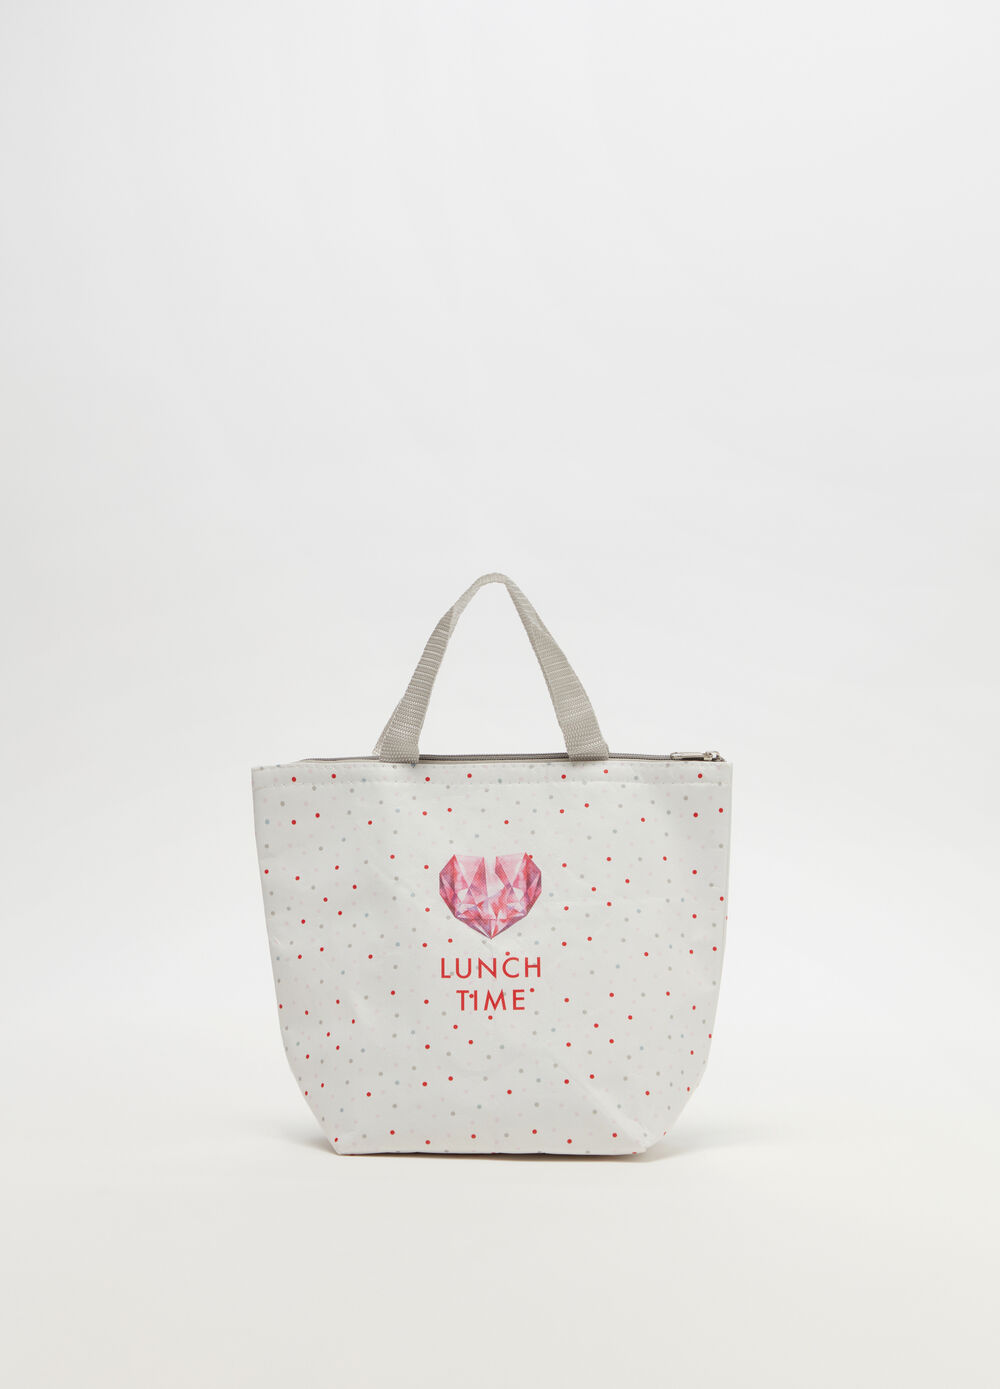 Lunch tote with handles, print and pattern